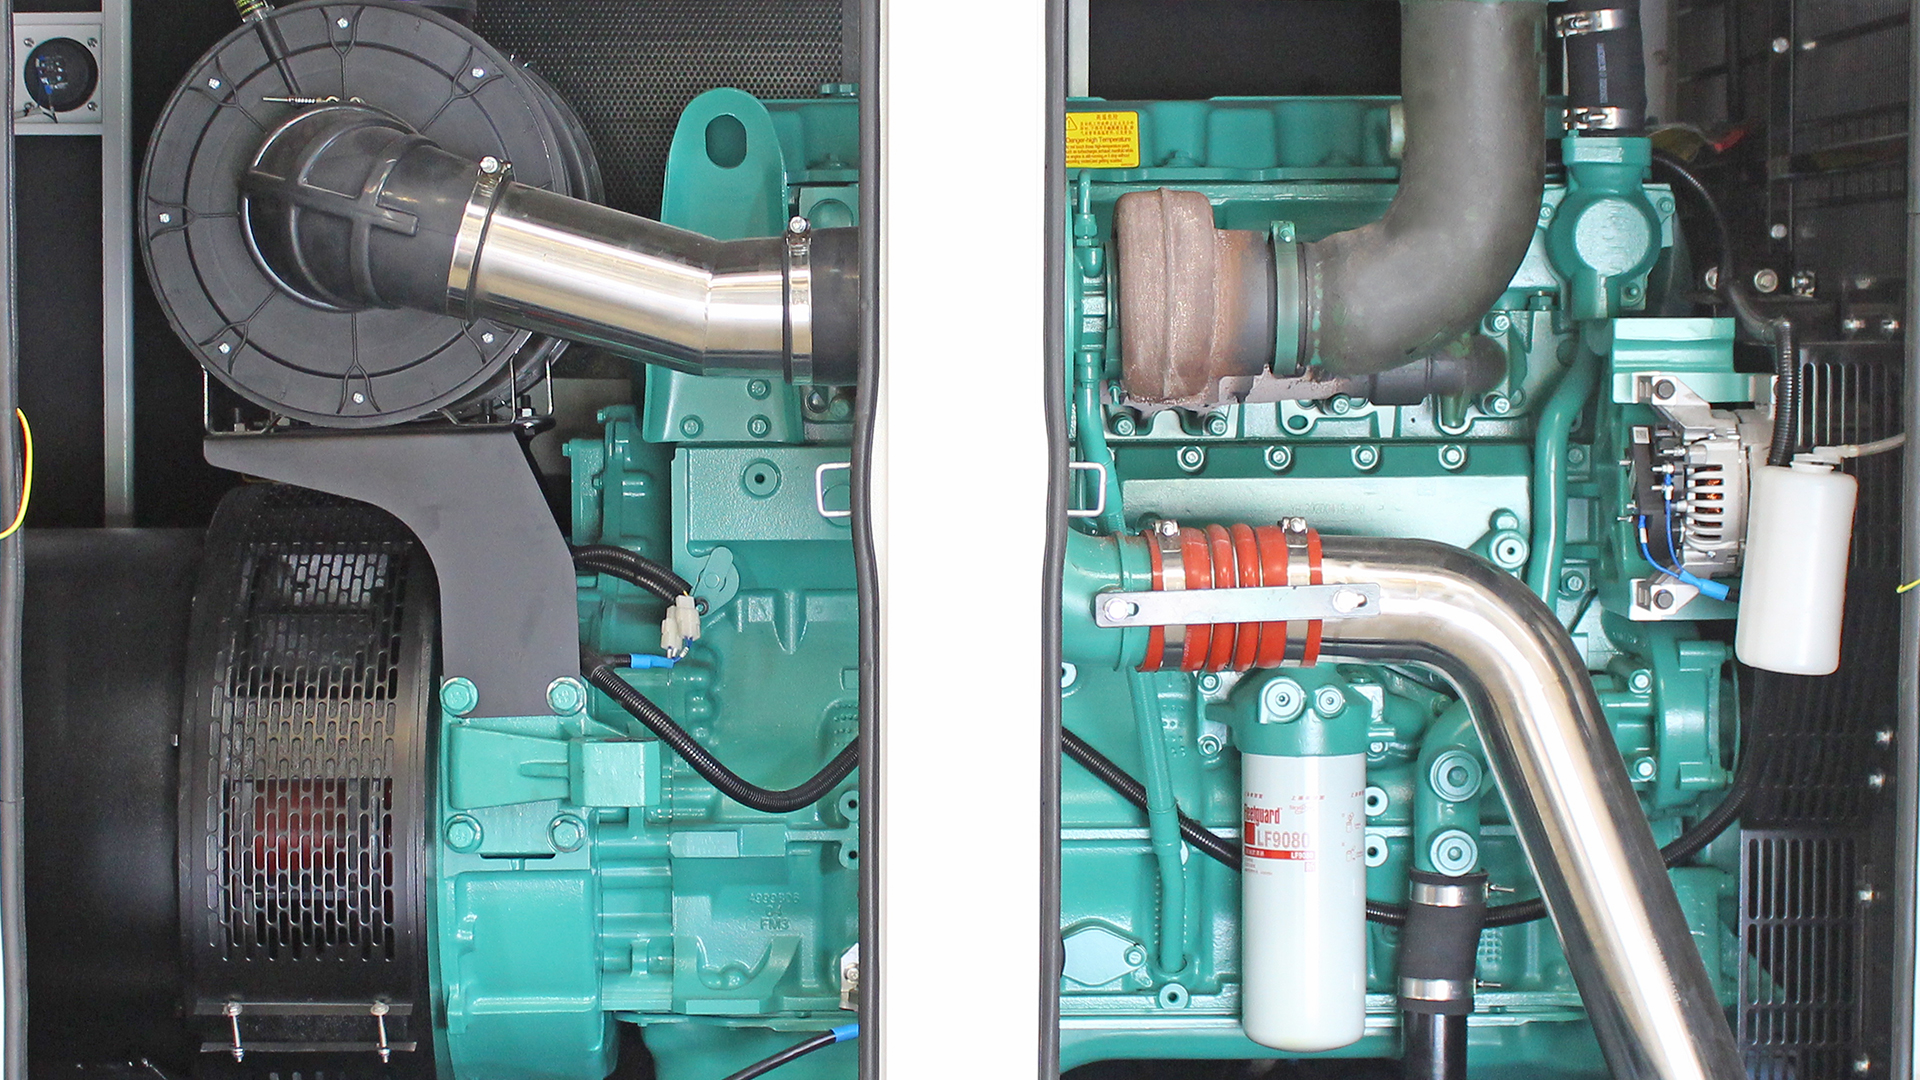 Rear side view of UKC500ECO generator showing Cummins engine